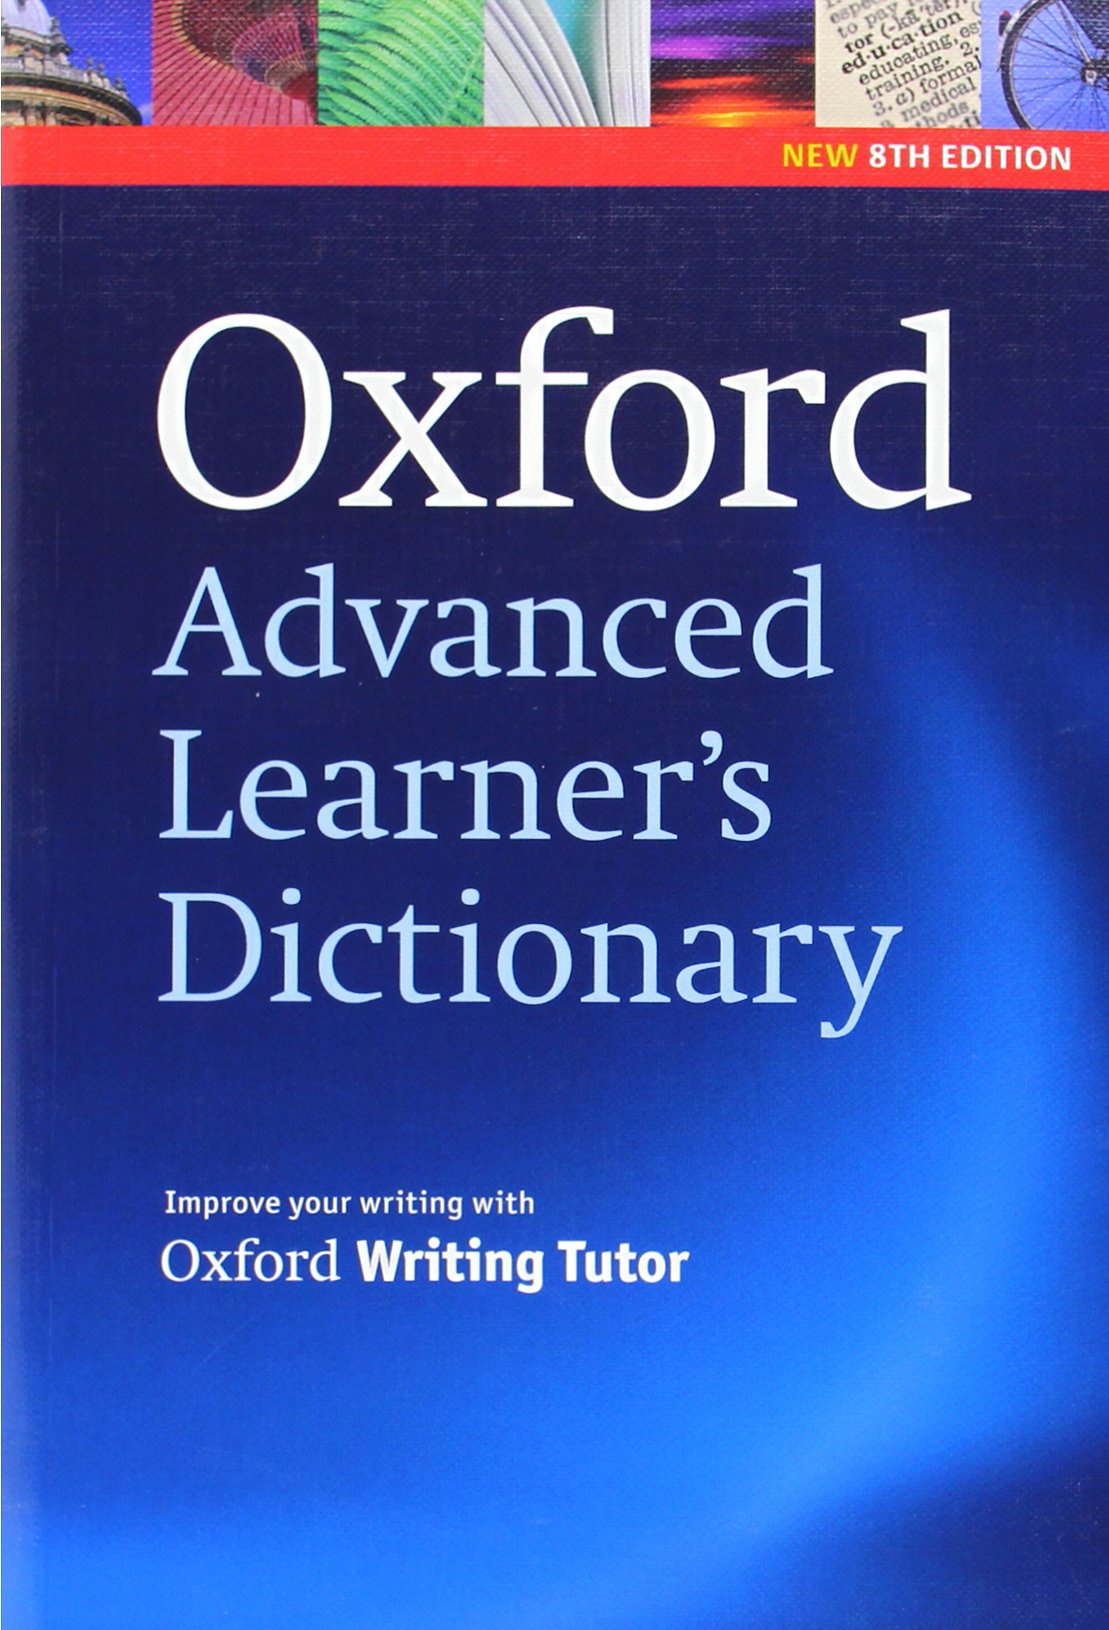 Image OfOxford Advanced Learner's Dictionary, 8th Edition: Paperback